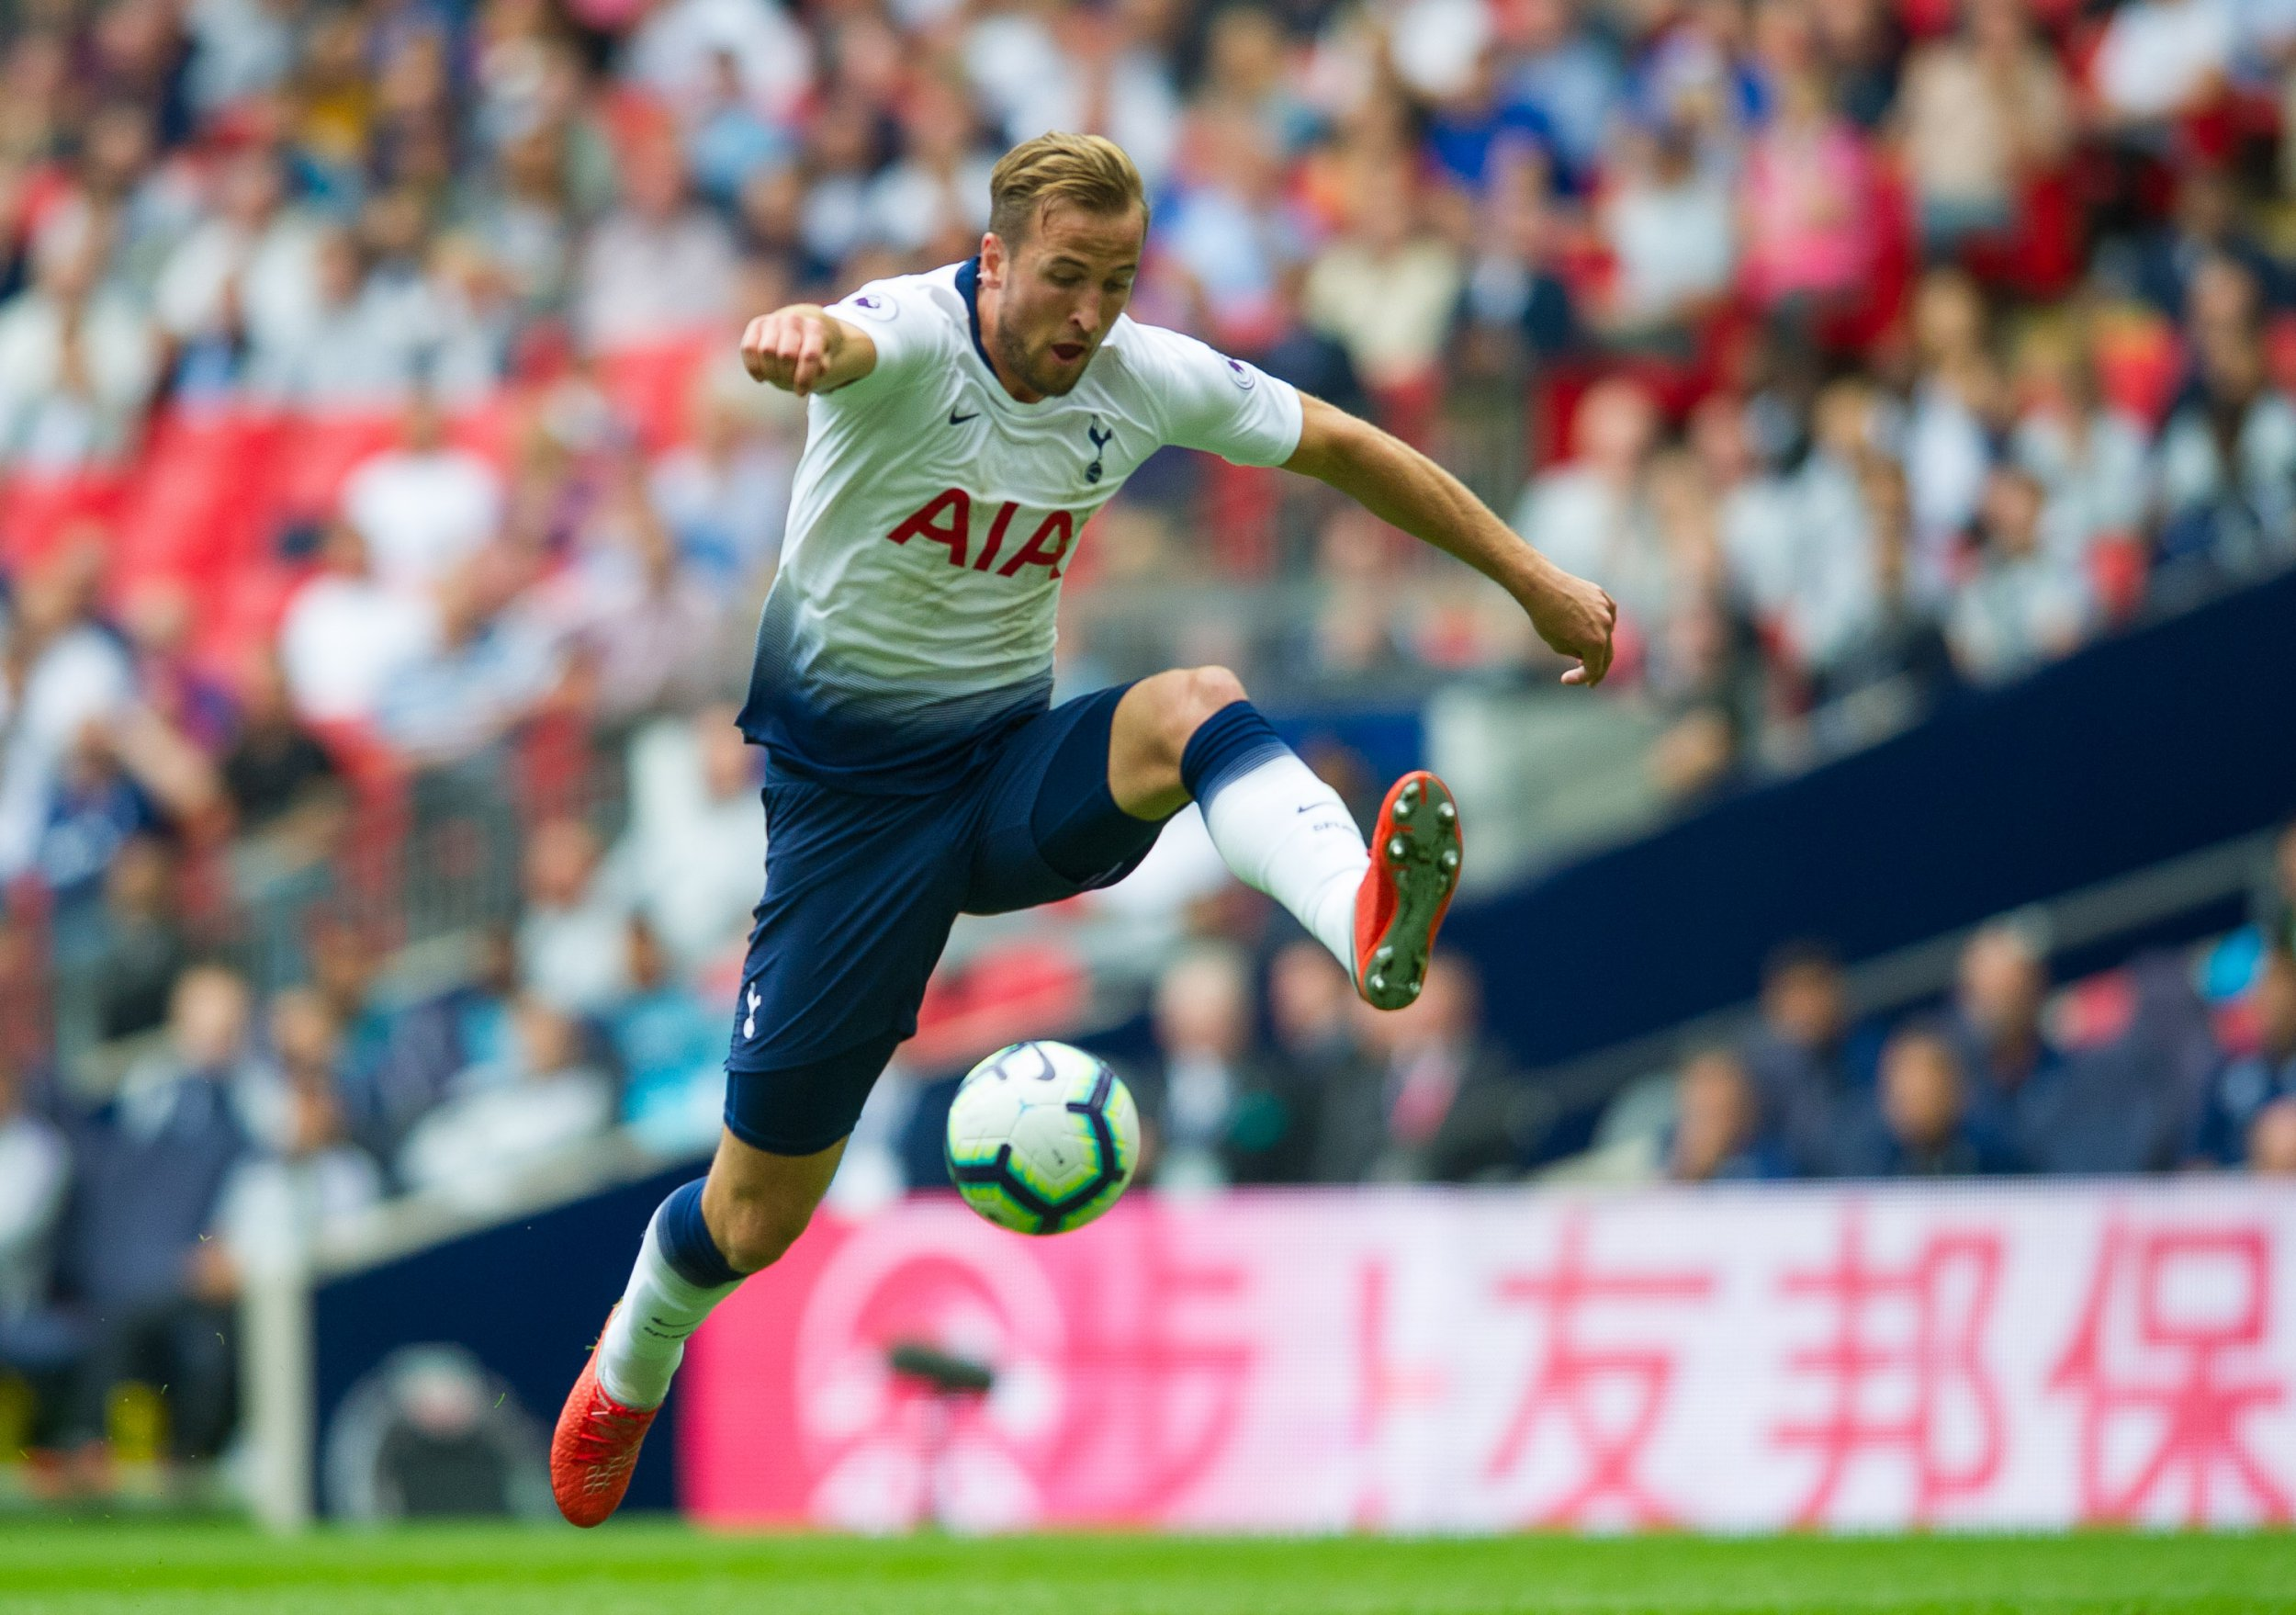 Tottenham's Harry Kane during the Premier League match between Tottenham Hotspur and Fulham at Wembley Stadium, London, England on 19 August 2018. Photo by Andrew Aleksiejczuk / PRiME Media Images.